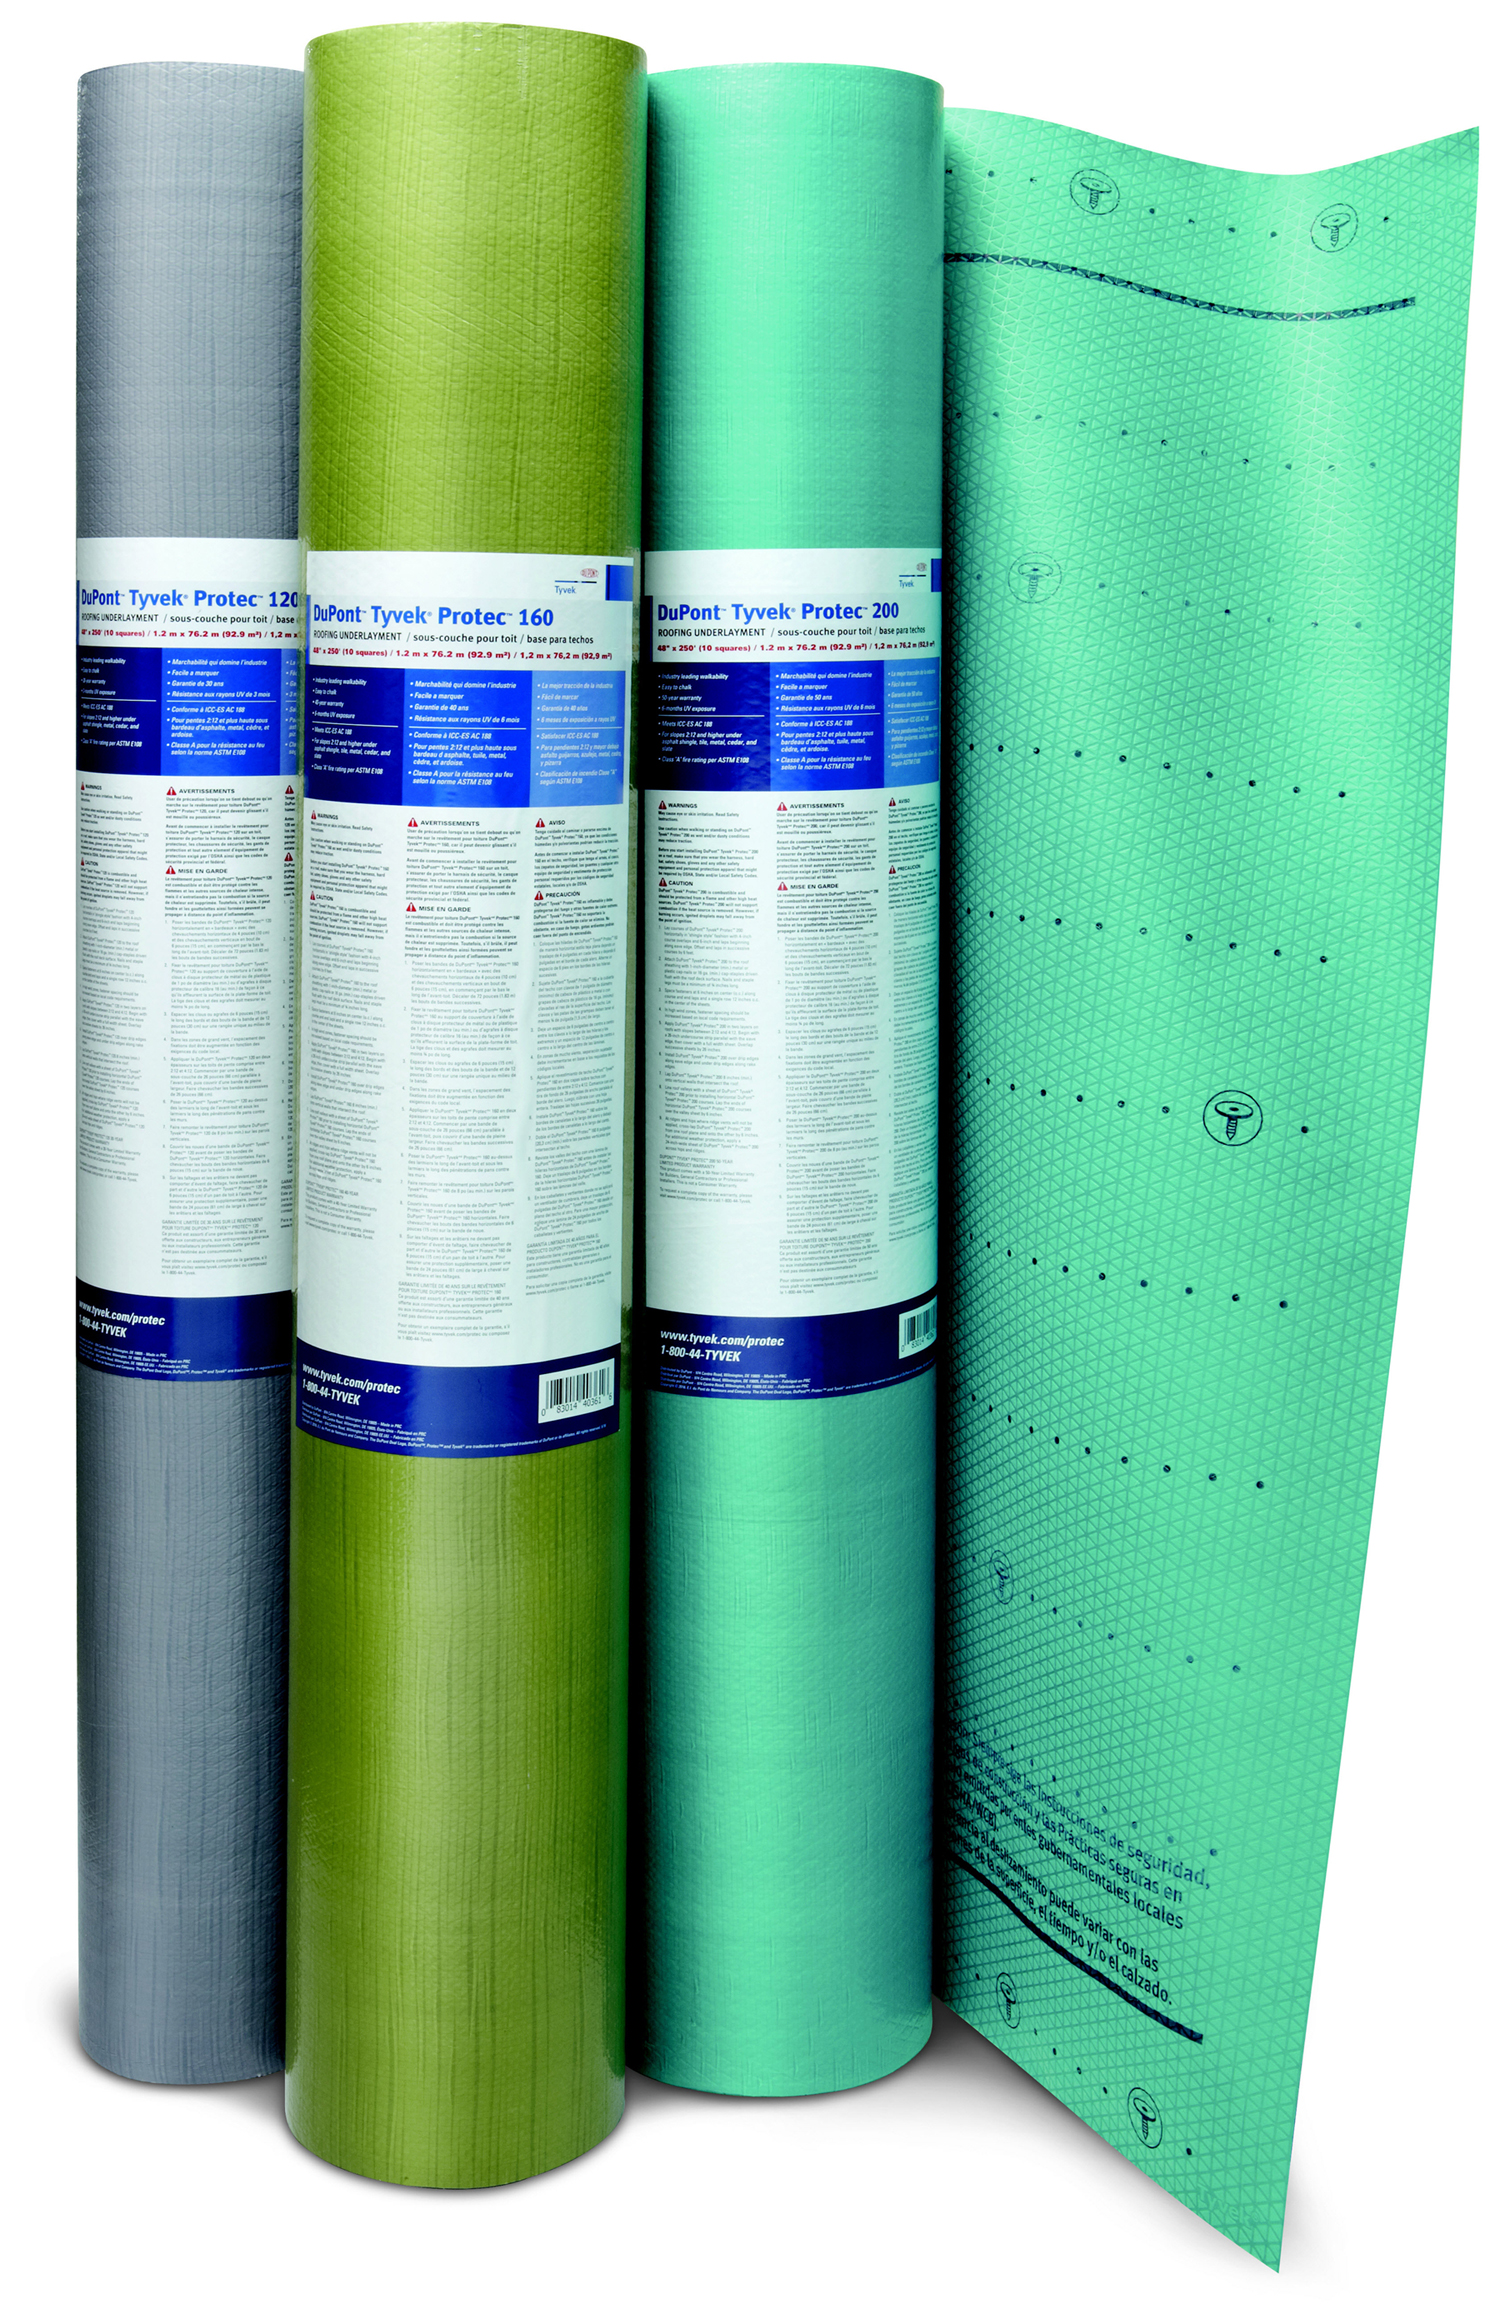 Dupont Tyvek 174 Protec Roofing Underlayments Debuts At